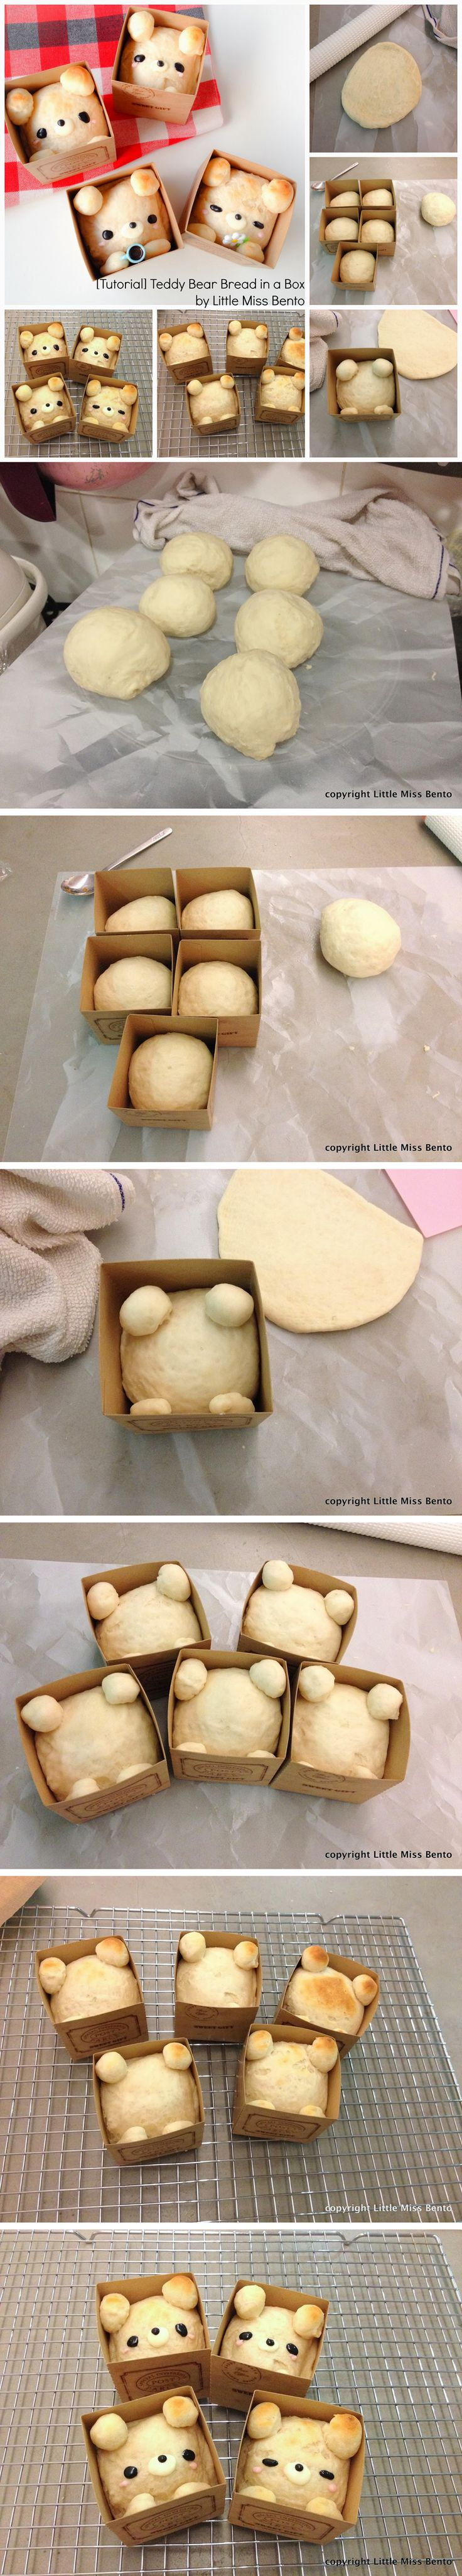 Teddy Bear Bread in a Box